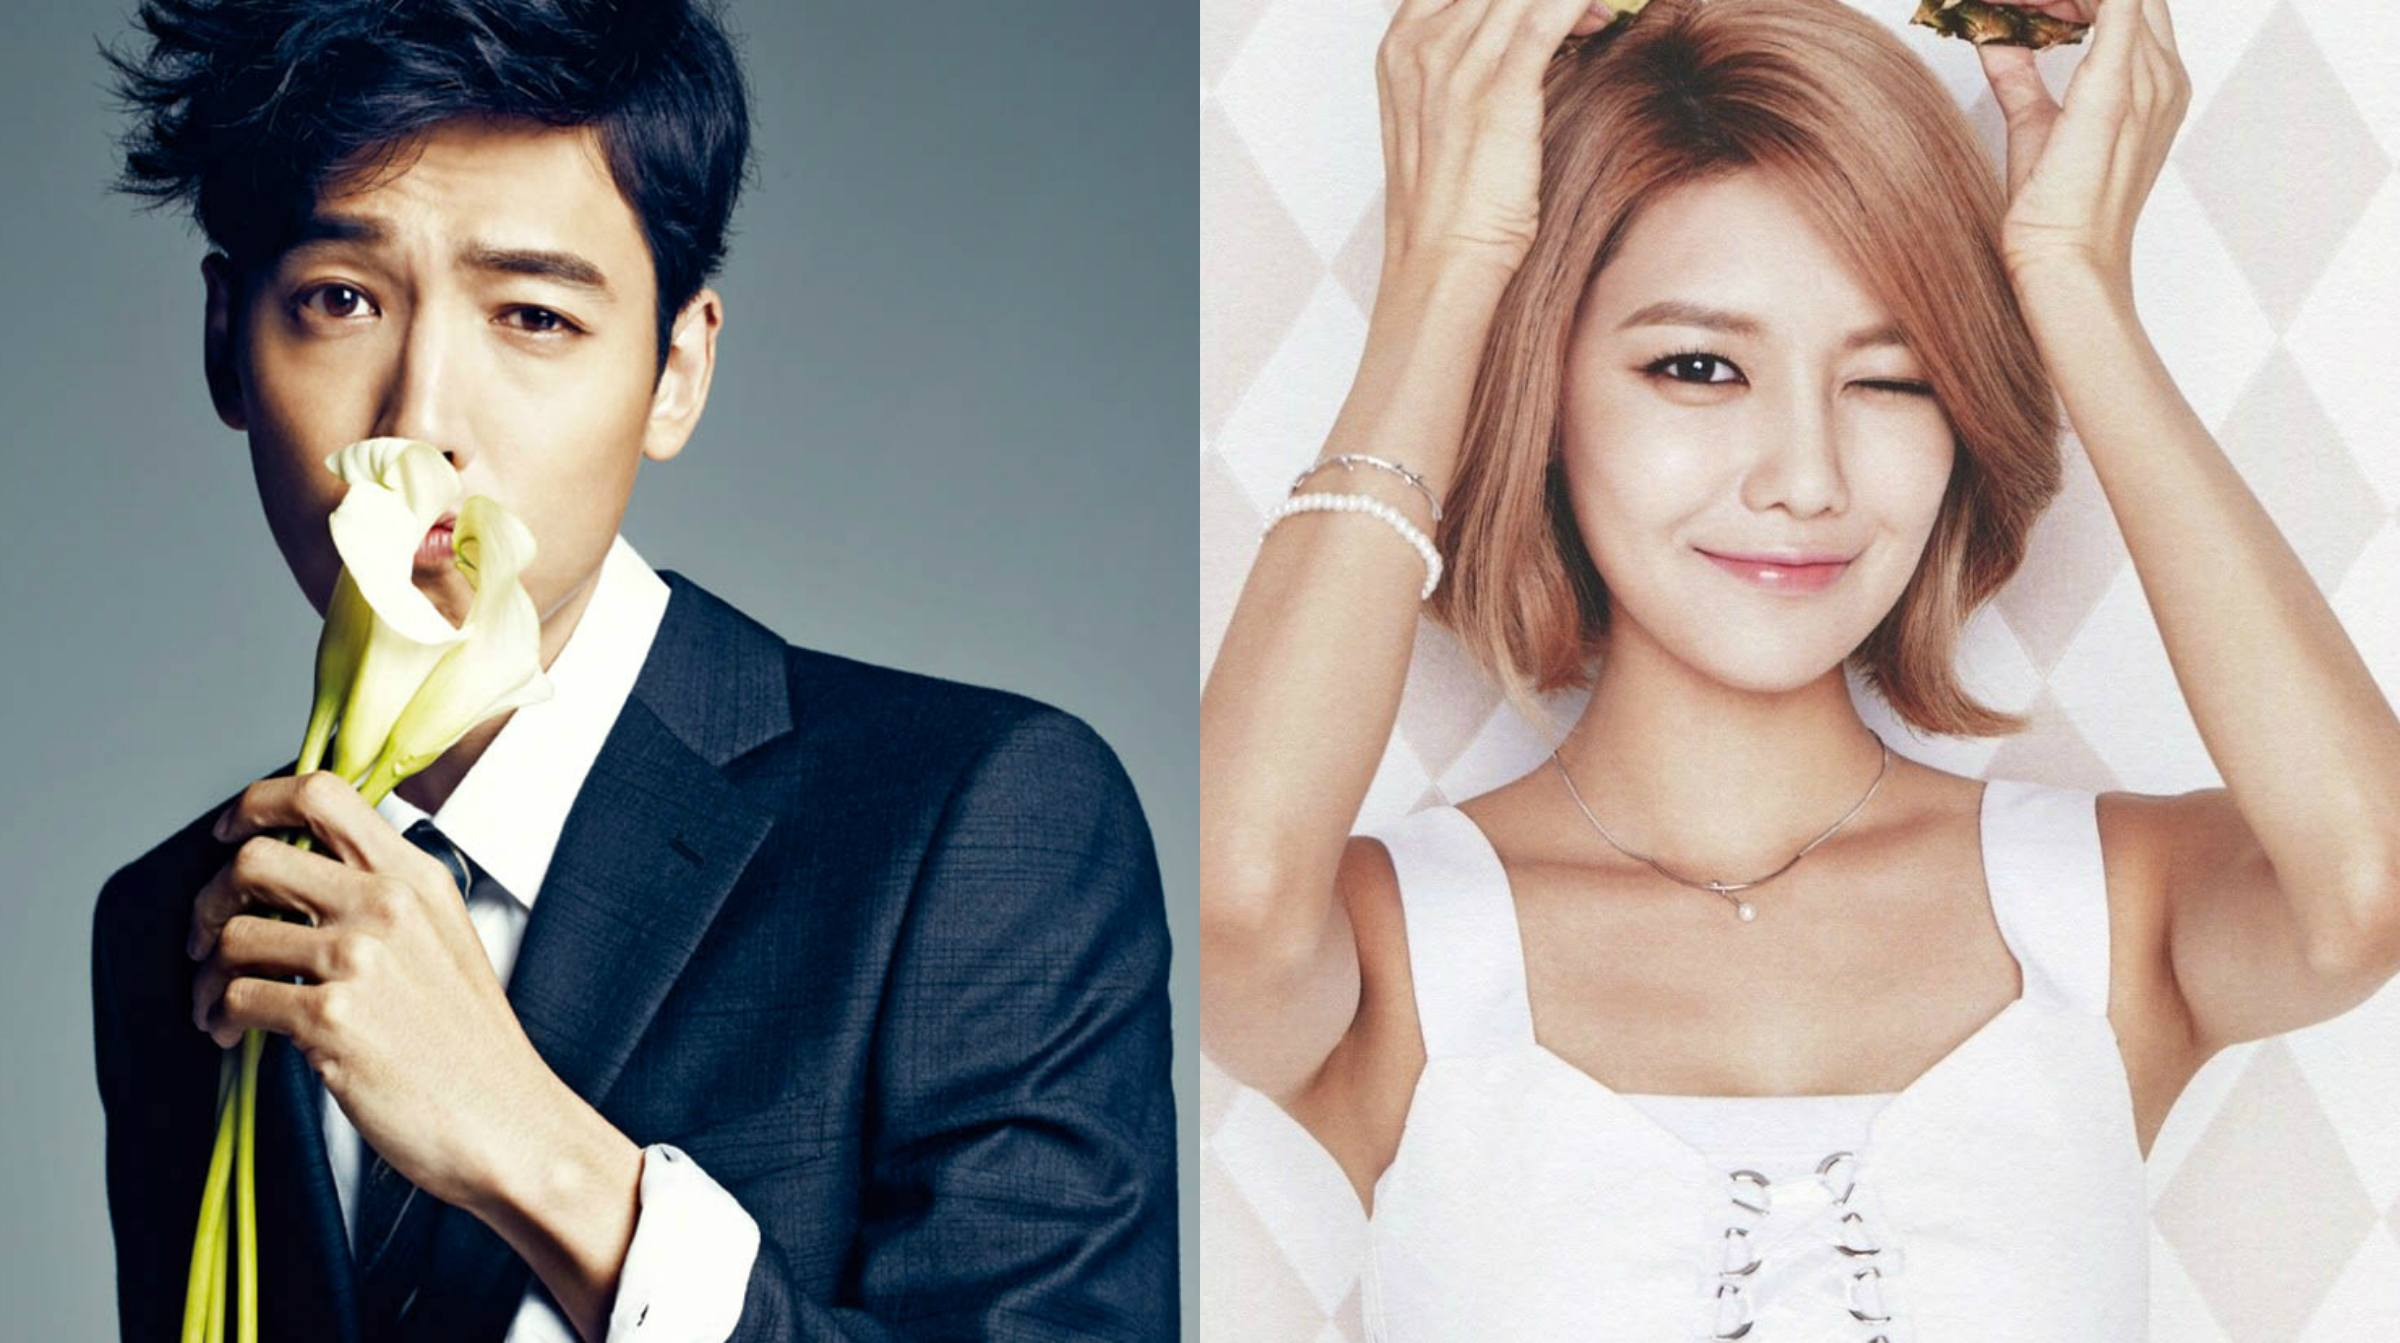 sooyoung dating jung kyung ho profile